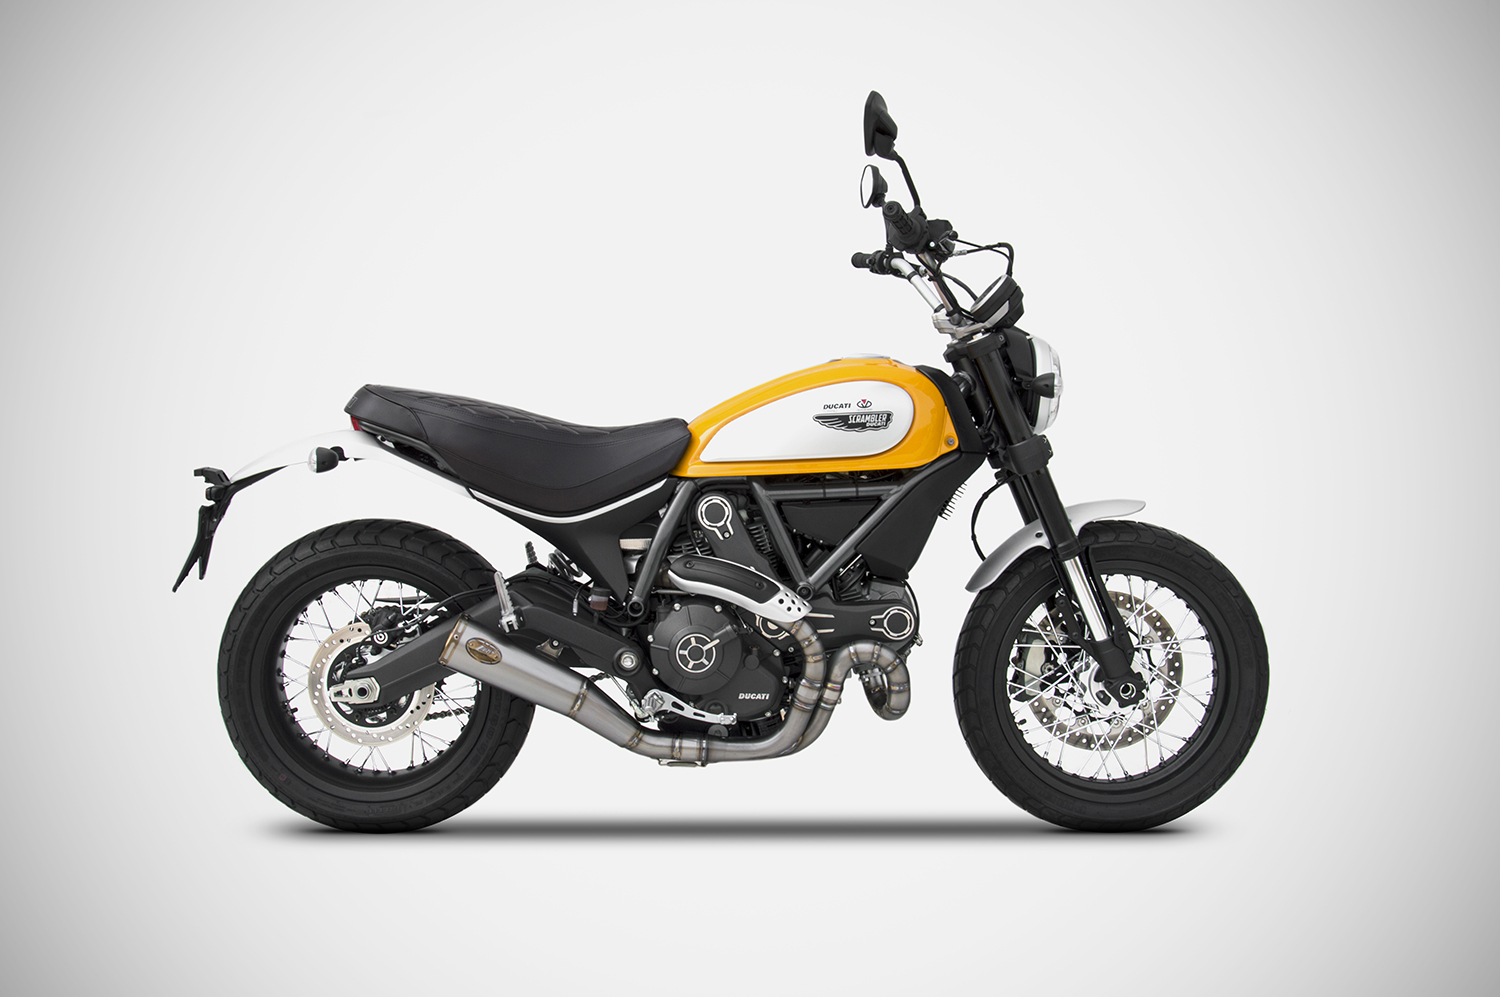 Ducati Scrambler Black Headers